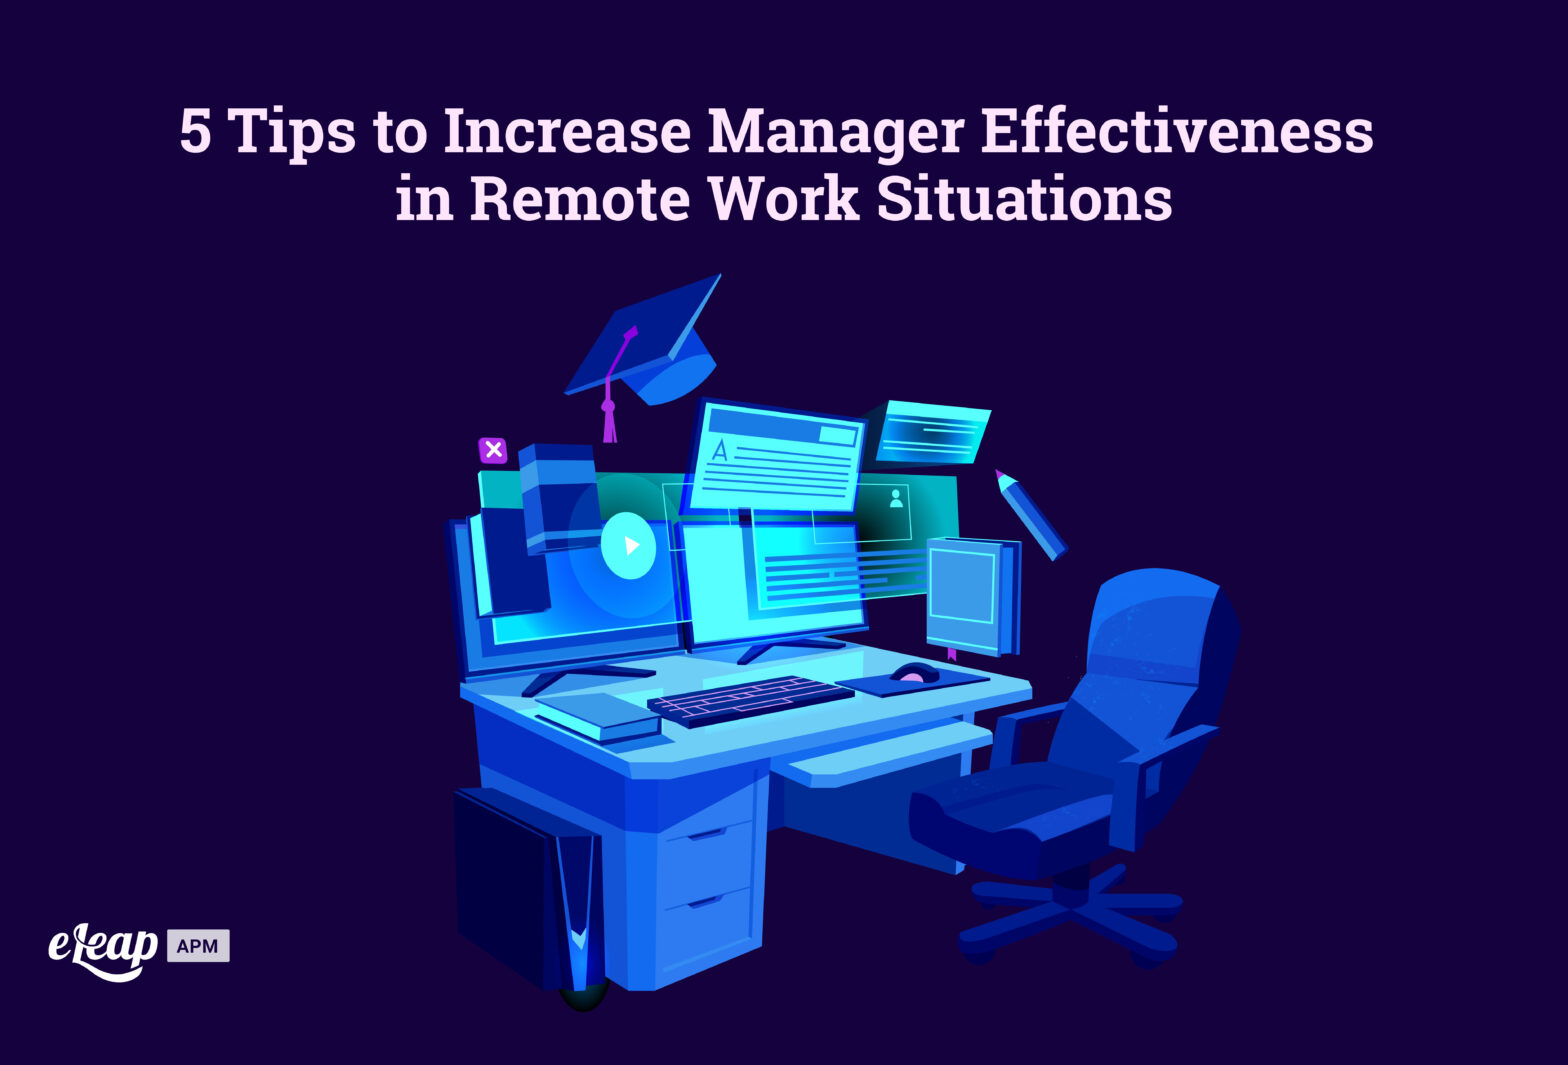 5 Tips to Increase Manager Effectiveness in Remote Work Situations